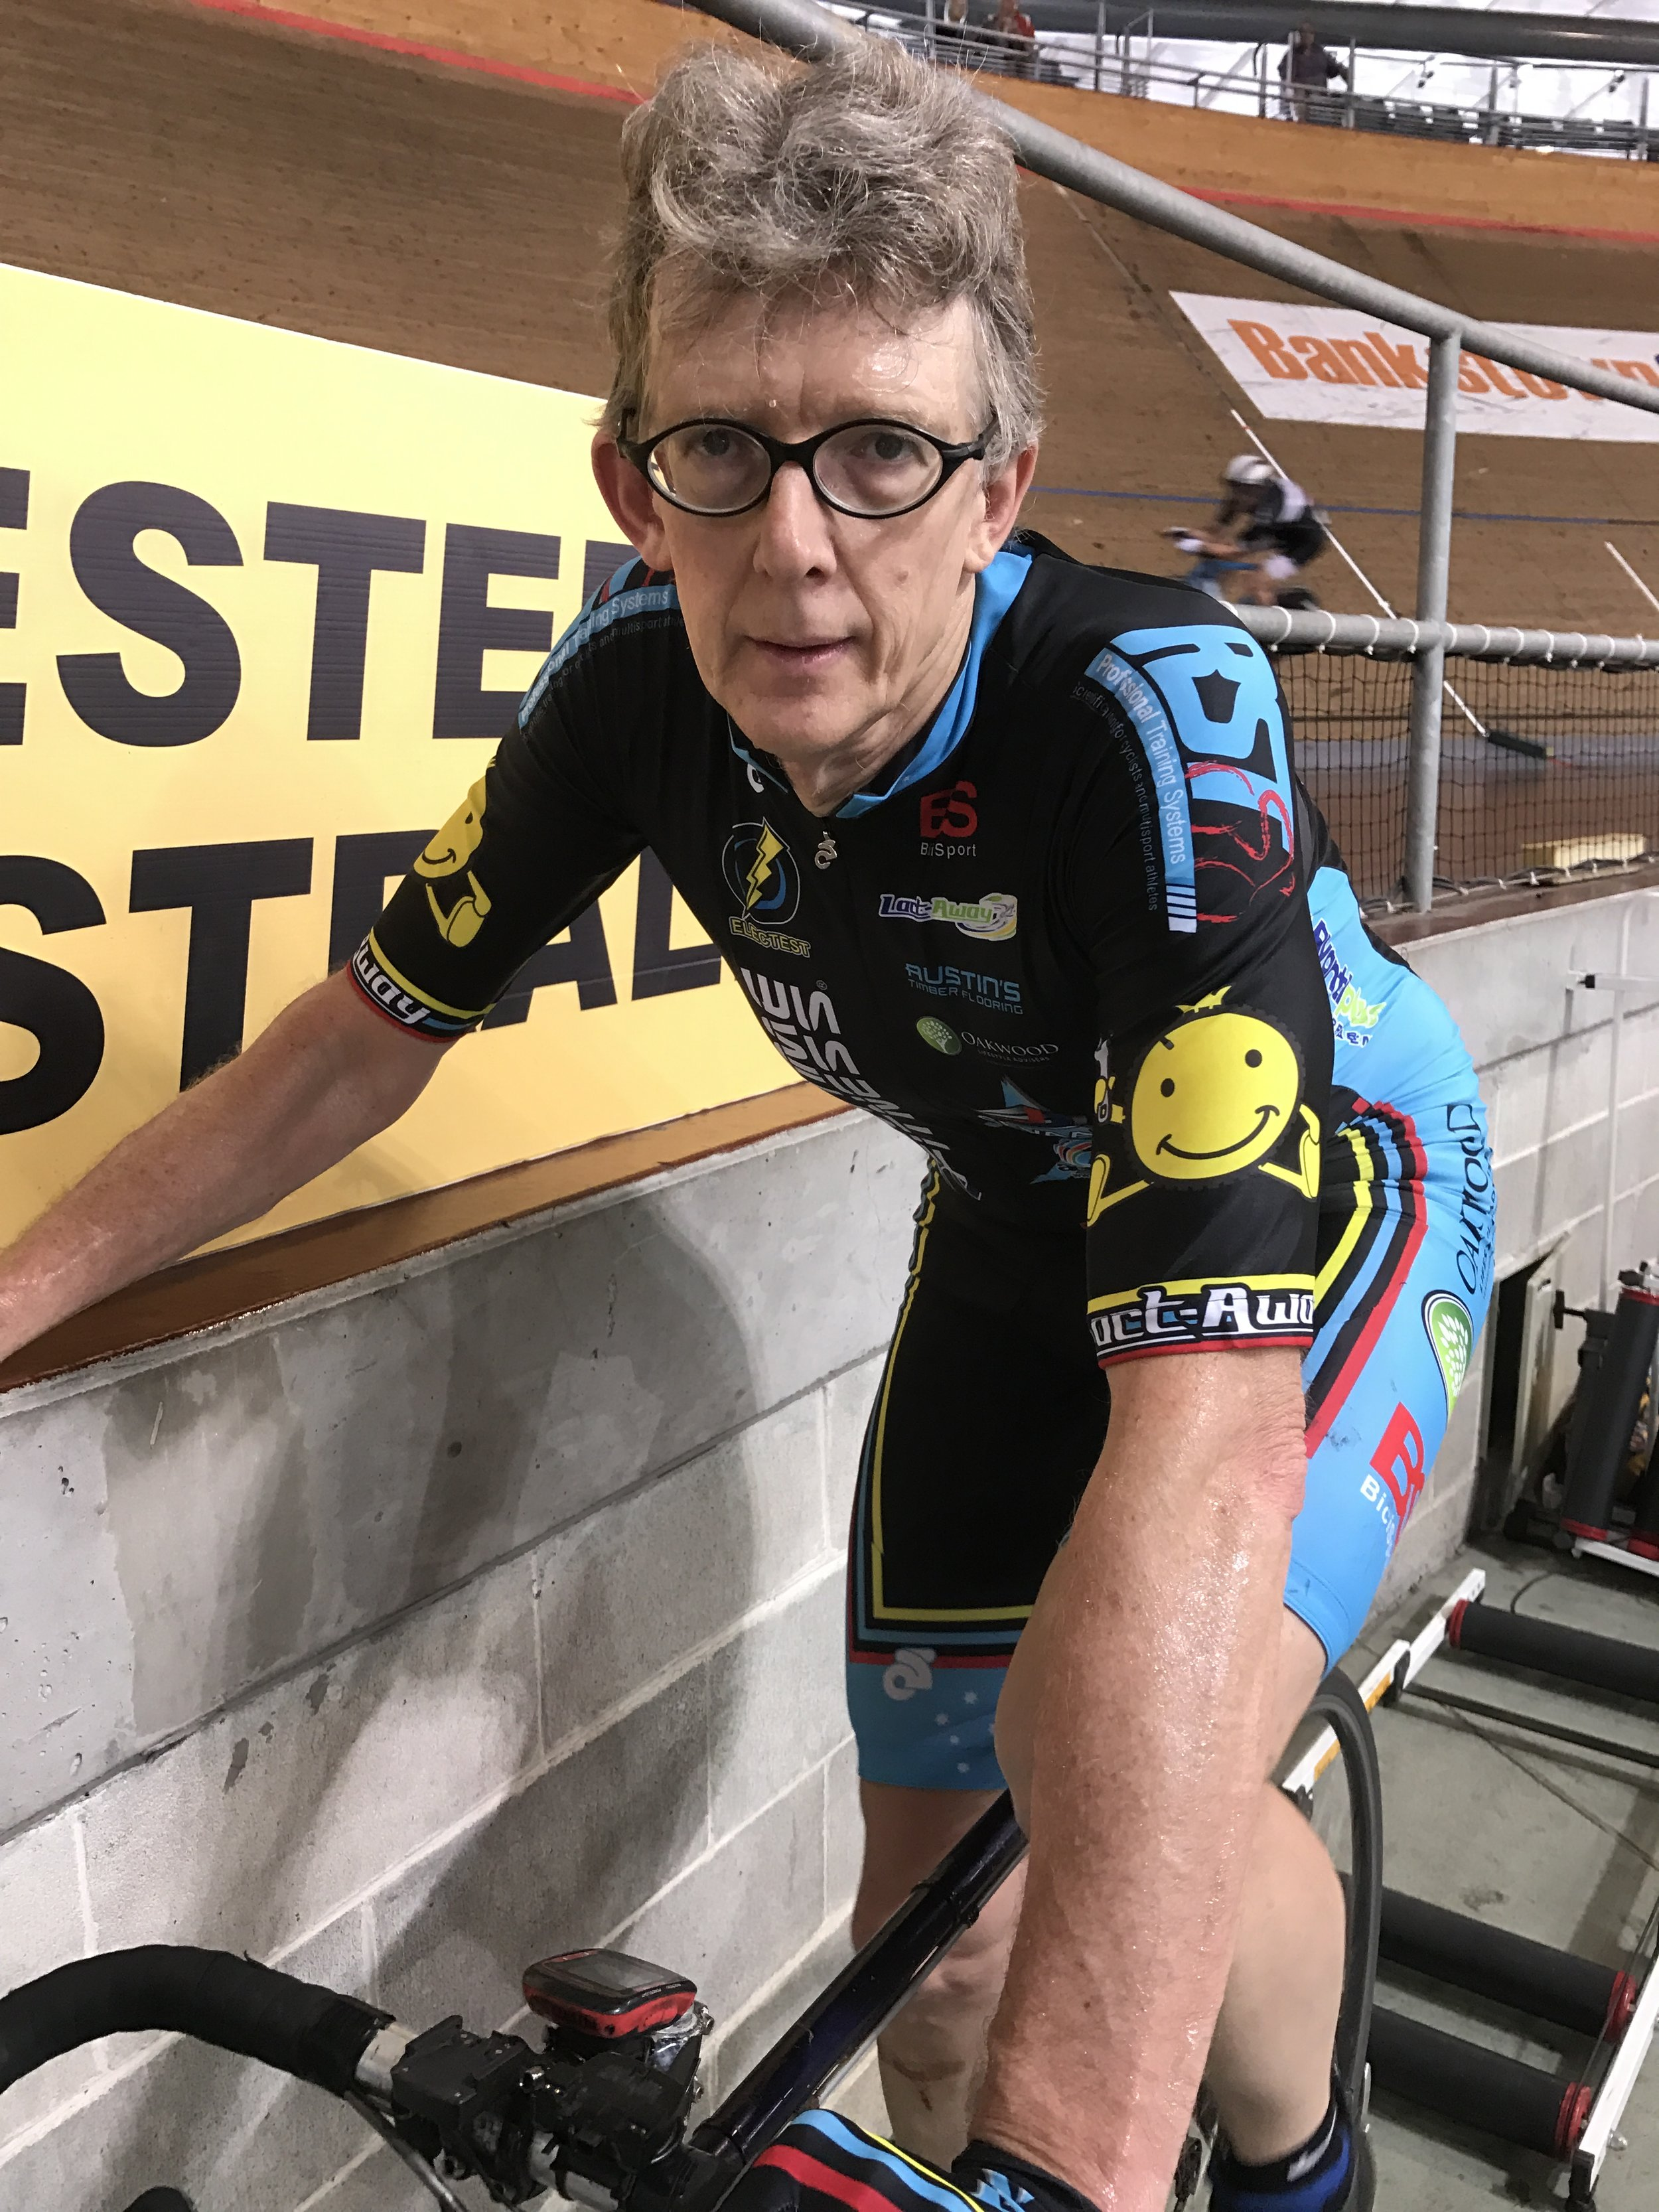 National Masters Track 2017 - Peter Verhoeven on the rollers after the M6 Individual Pursuit